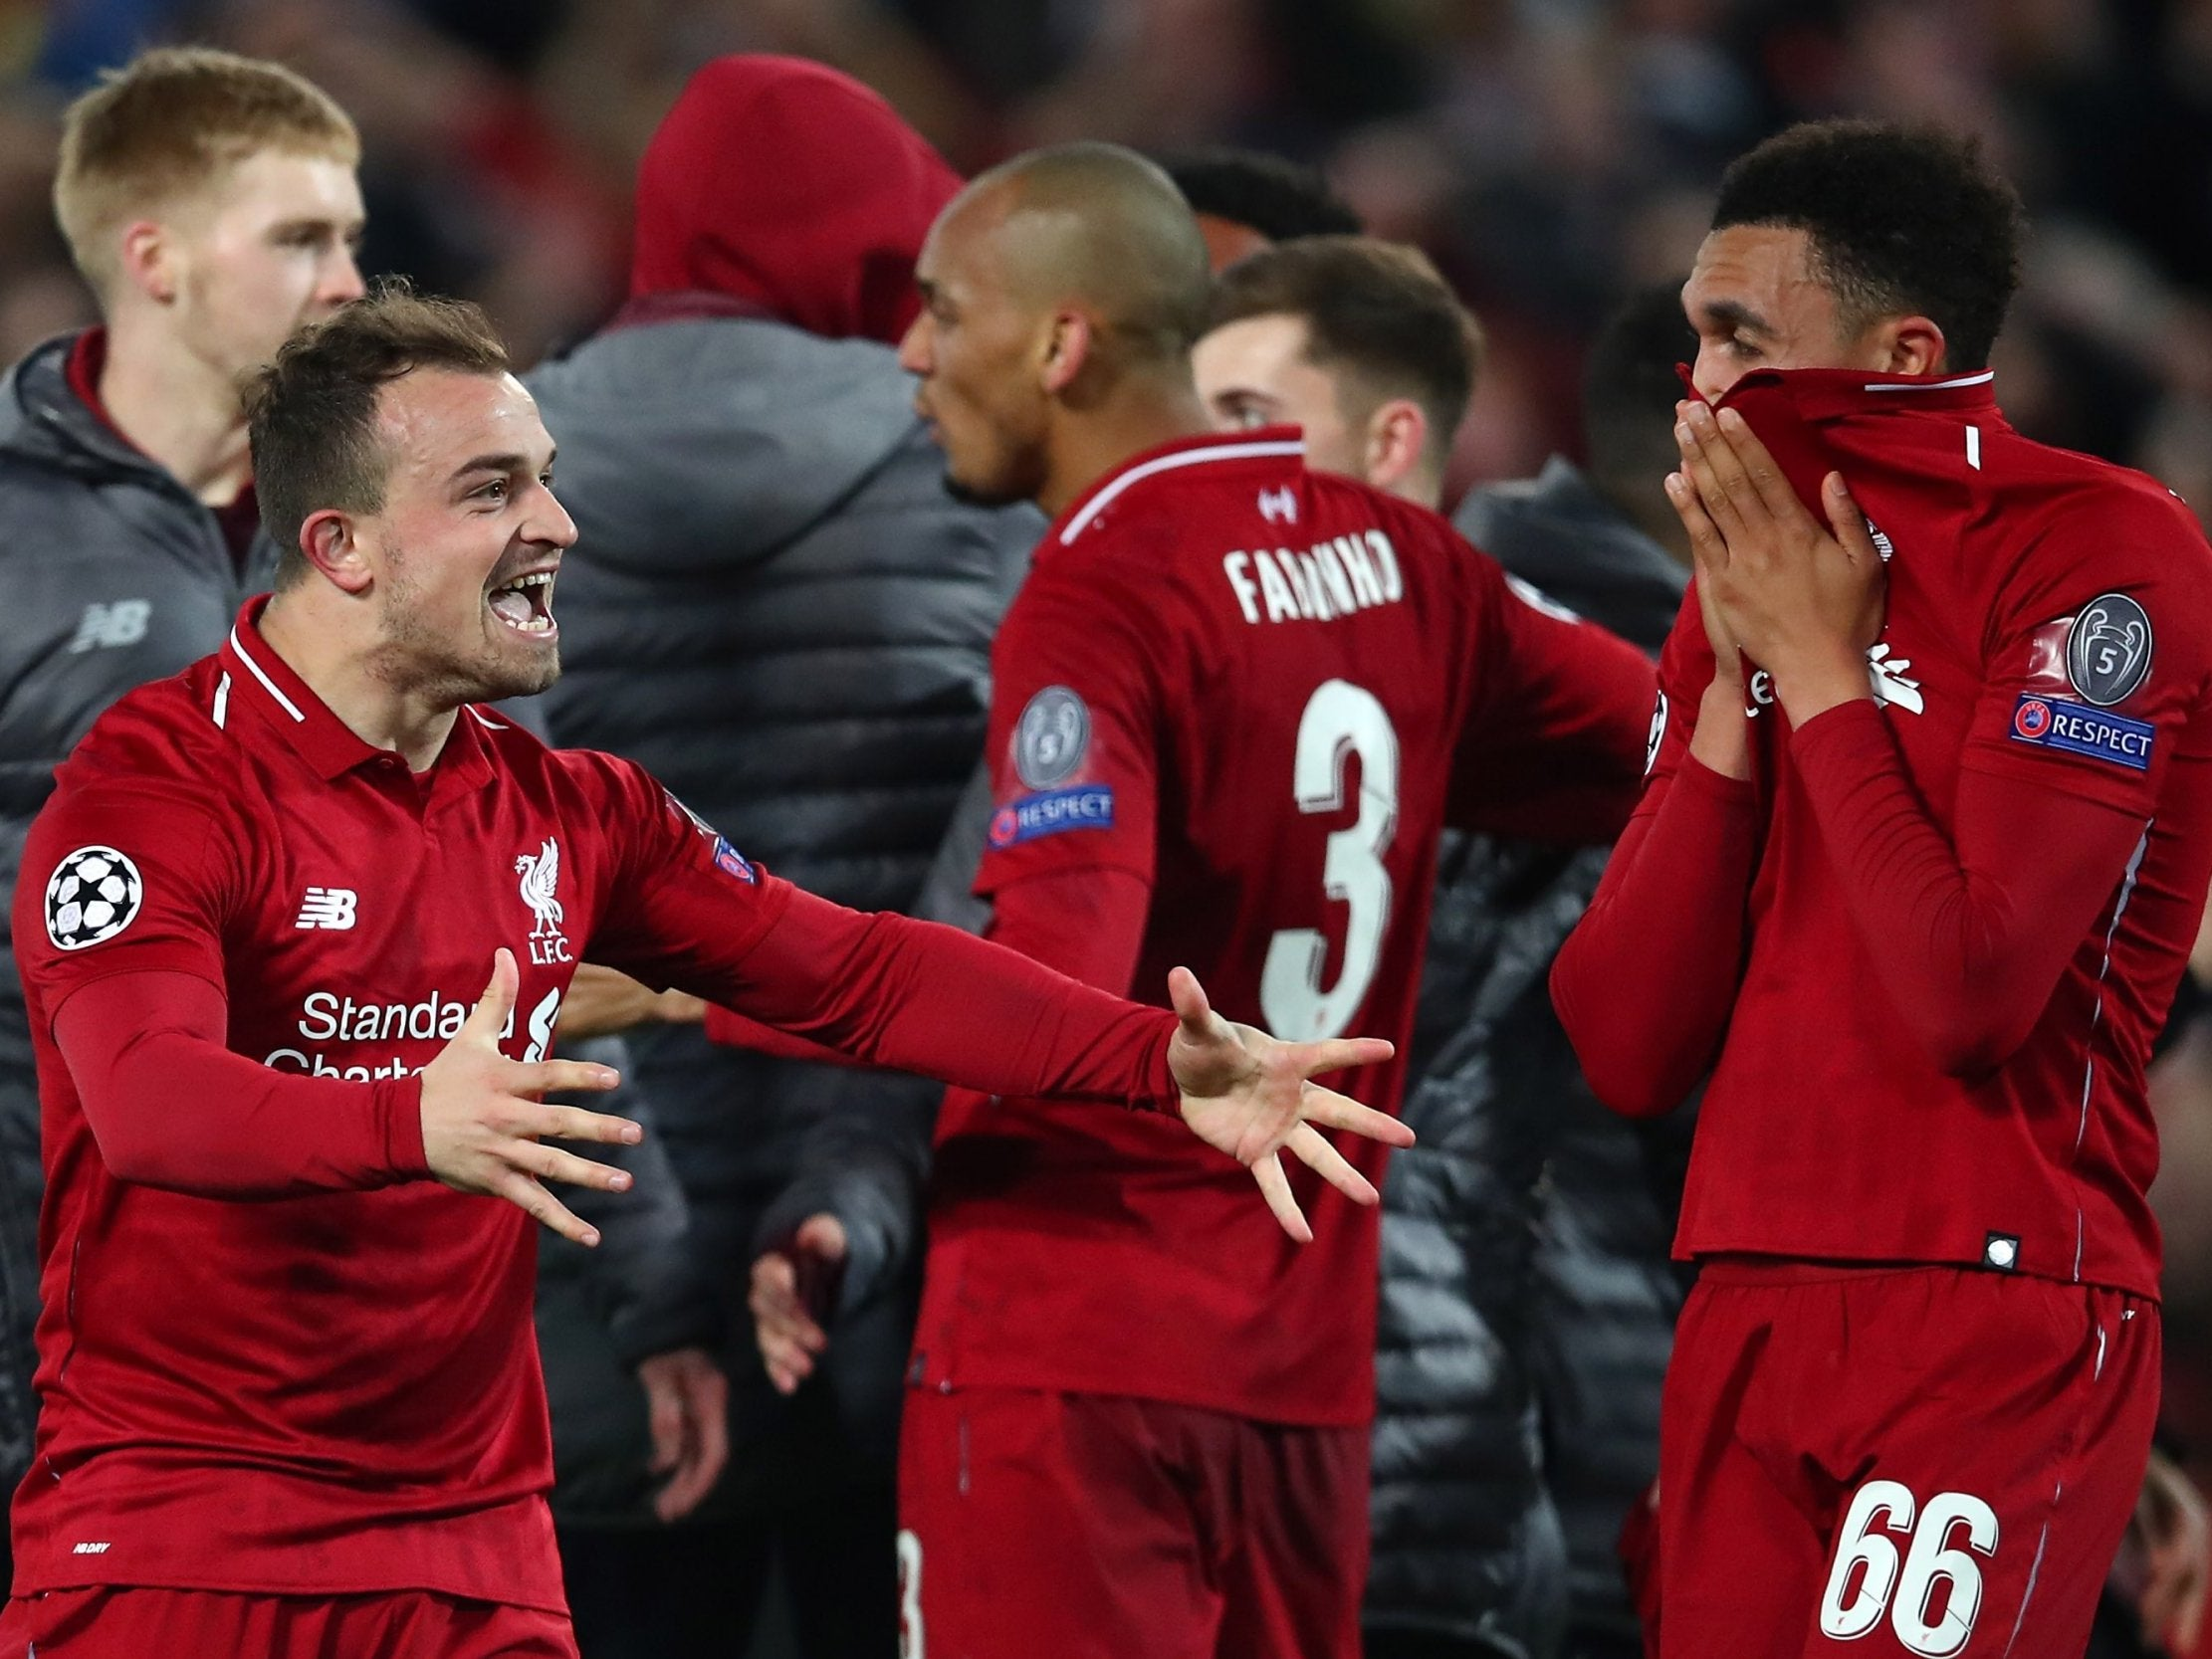 083396b3dd7 Liverpool vs Barcelona: Those who dared to dream inspired Anfield's most  special night | The Independent